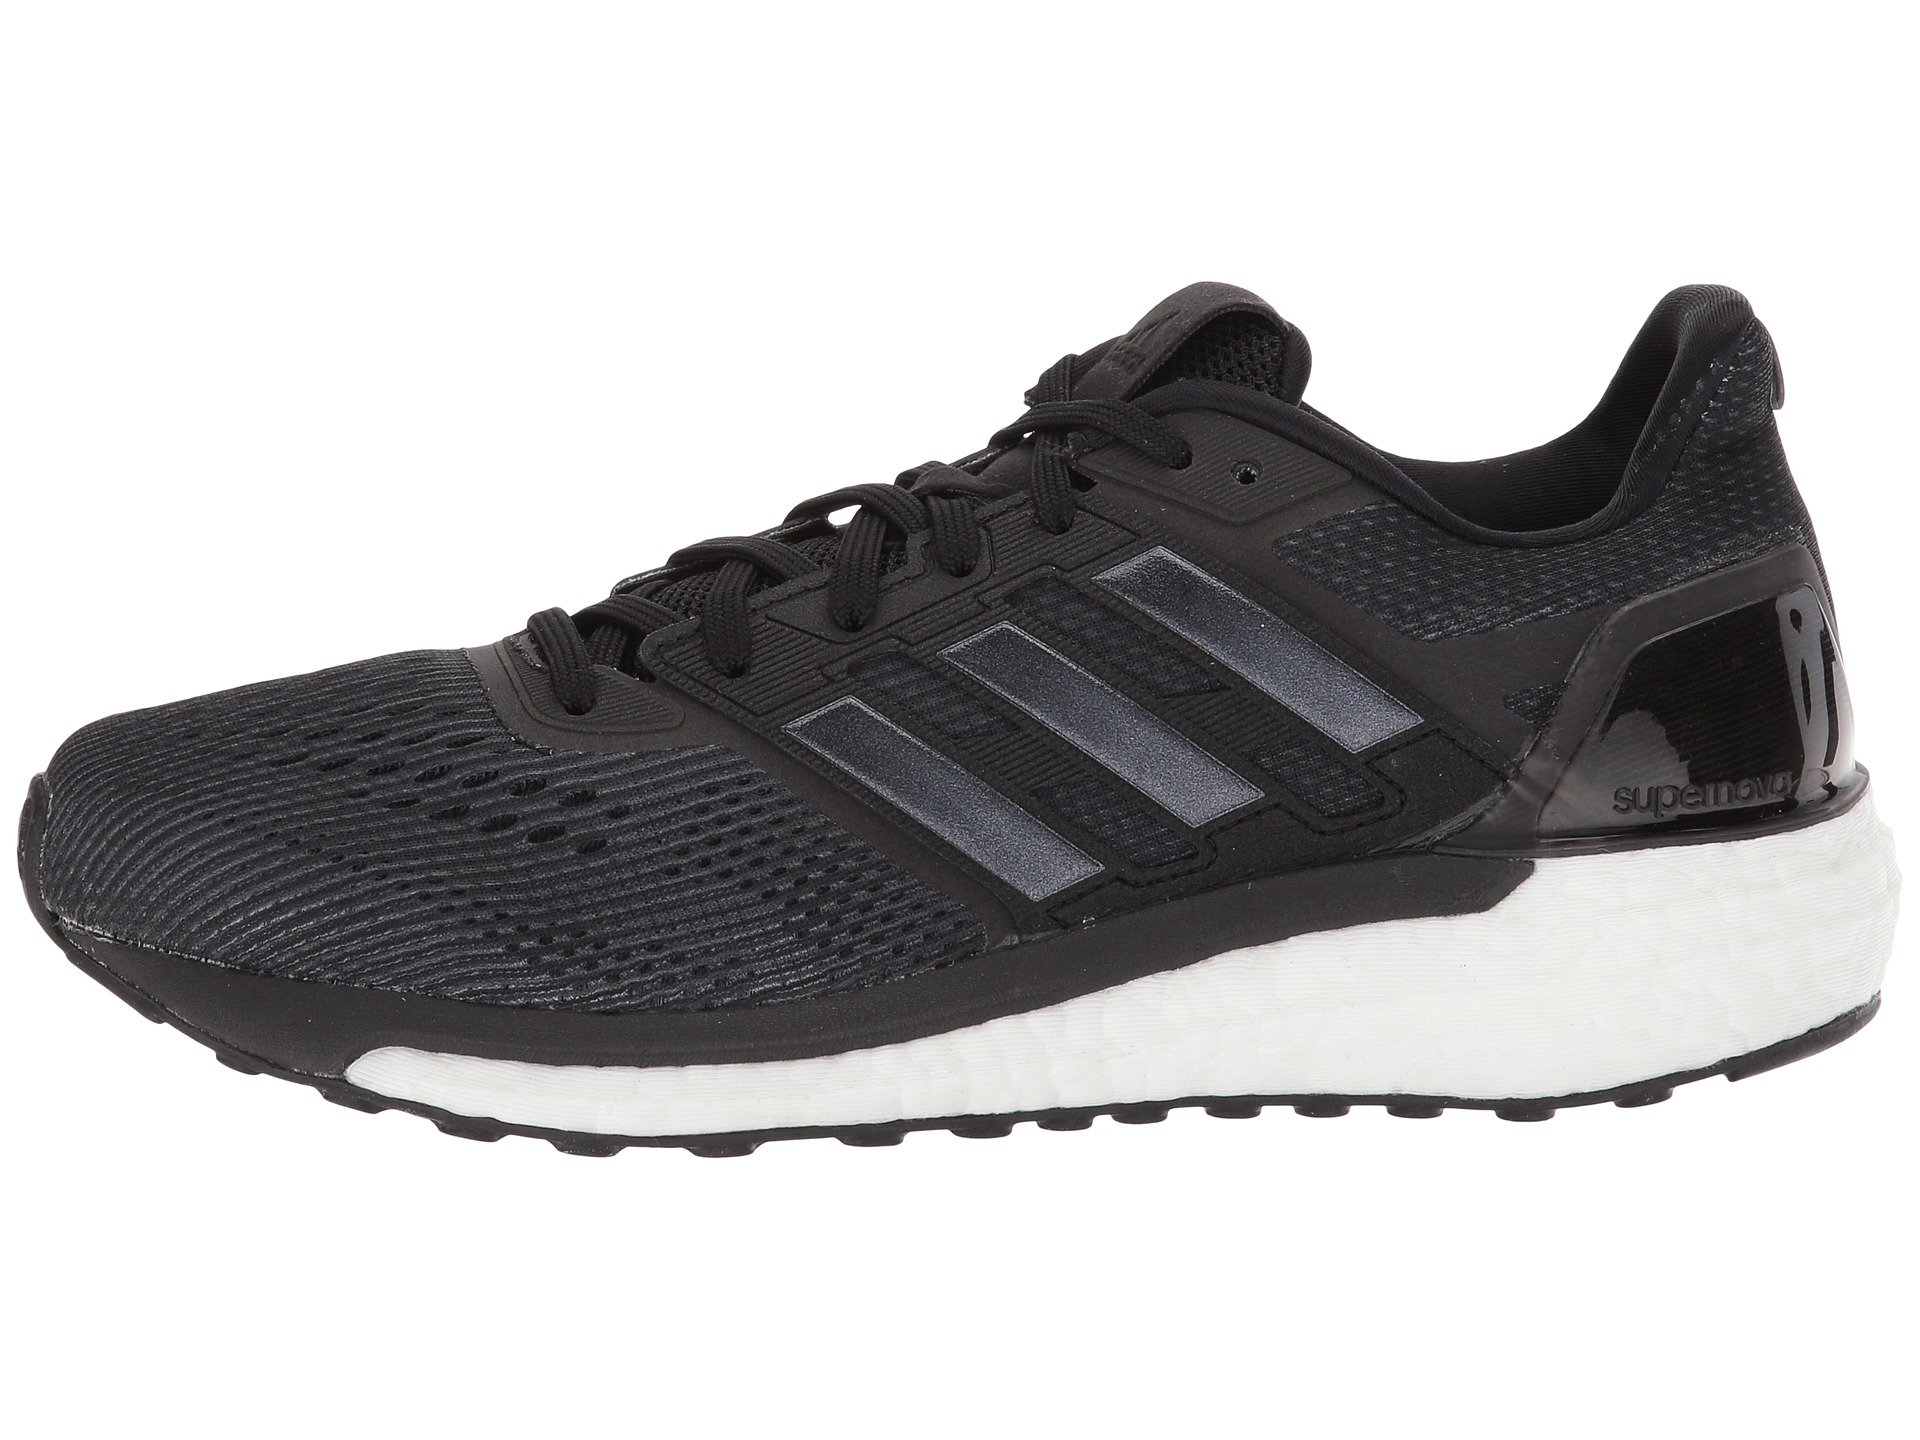 c6953ec7fdacc Best Adidas Running Shoes